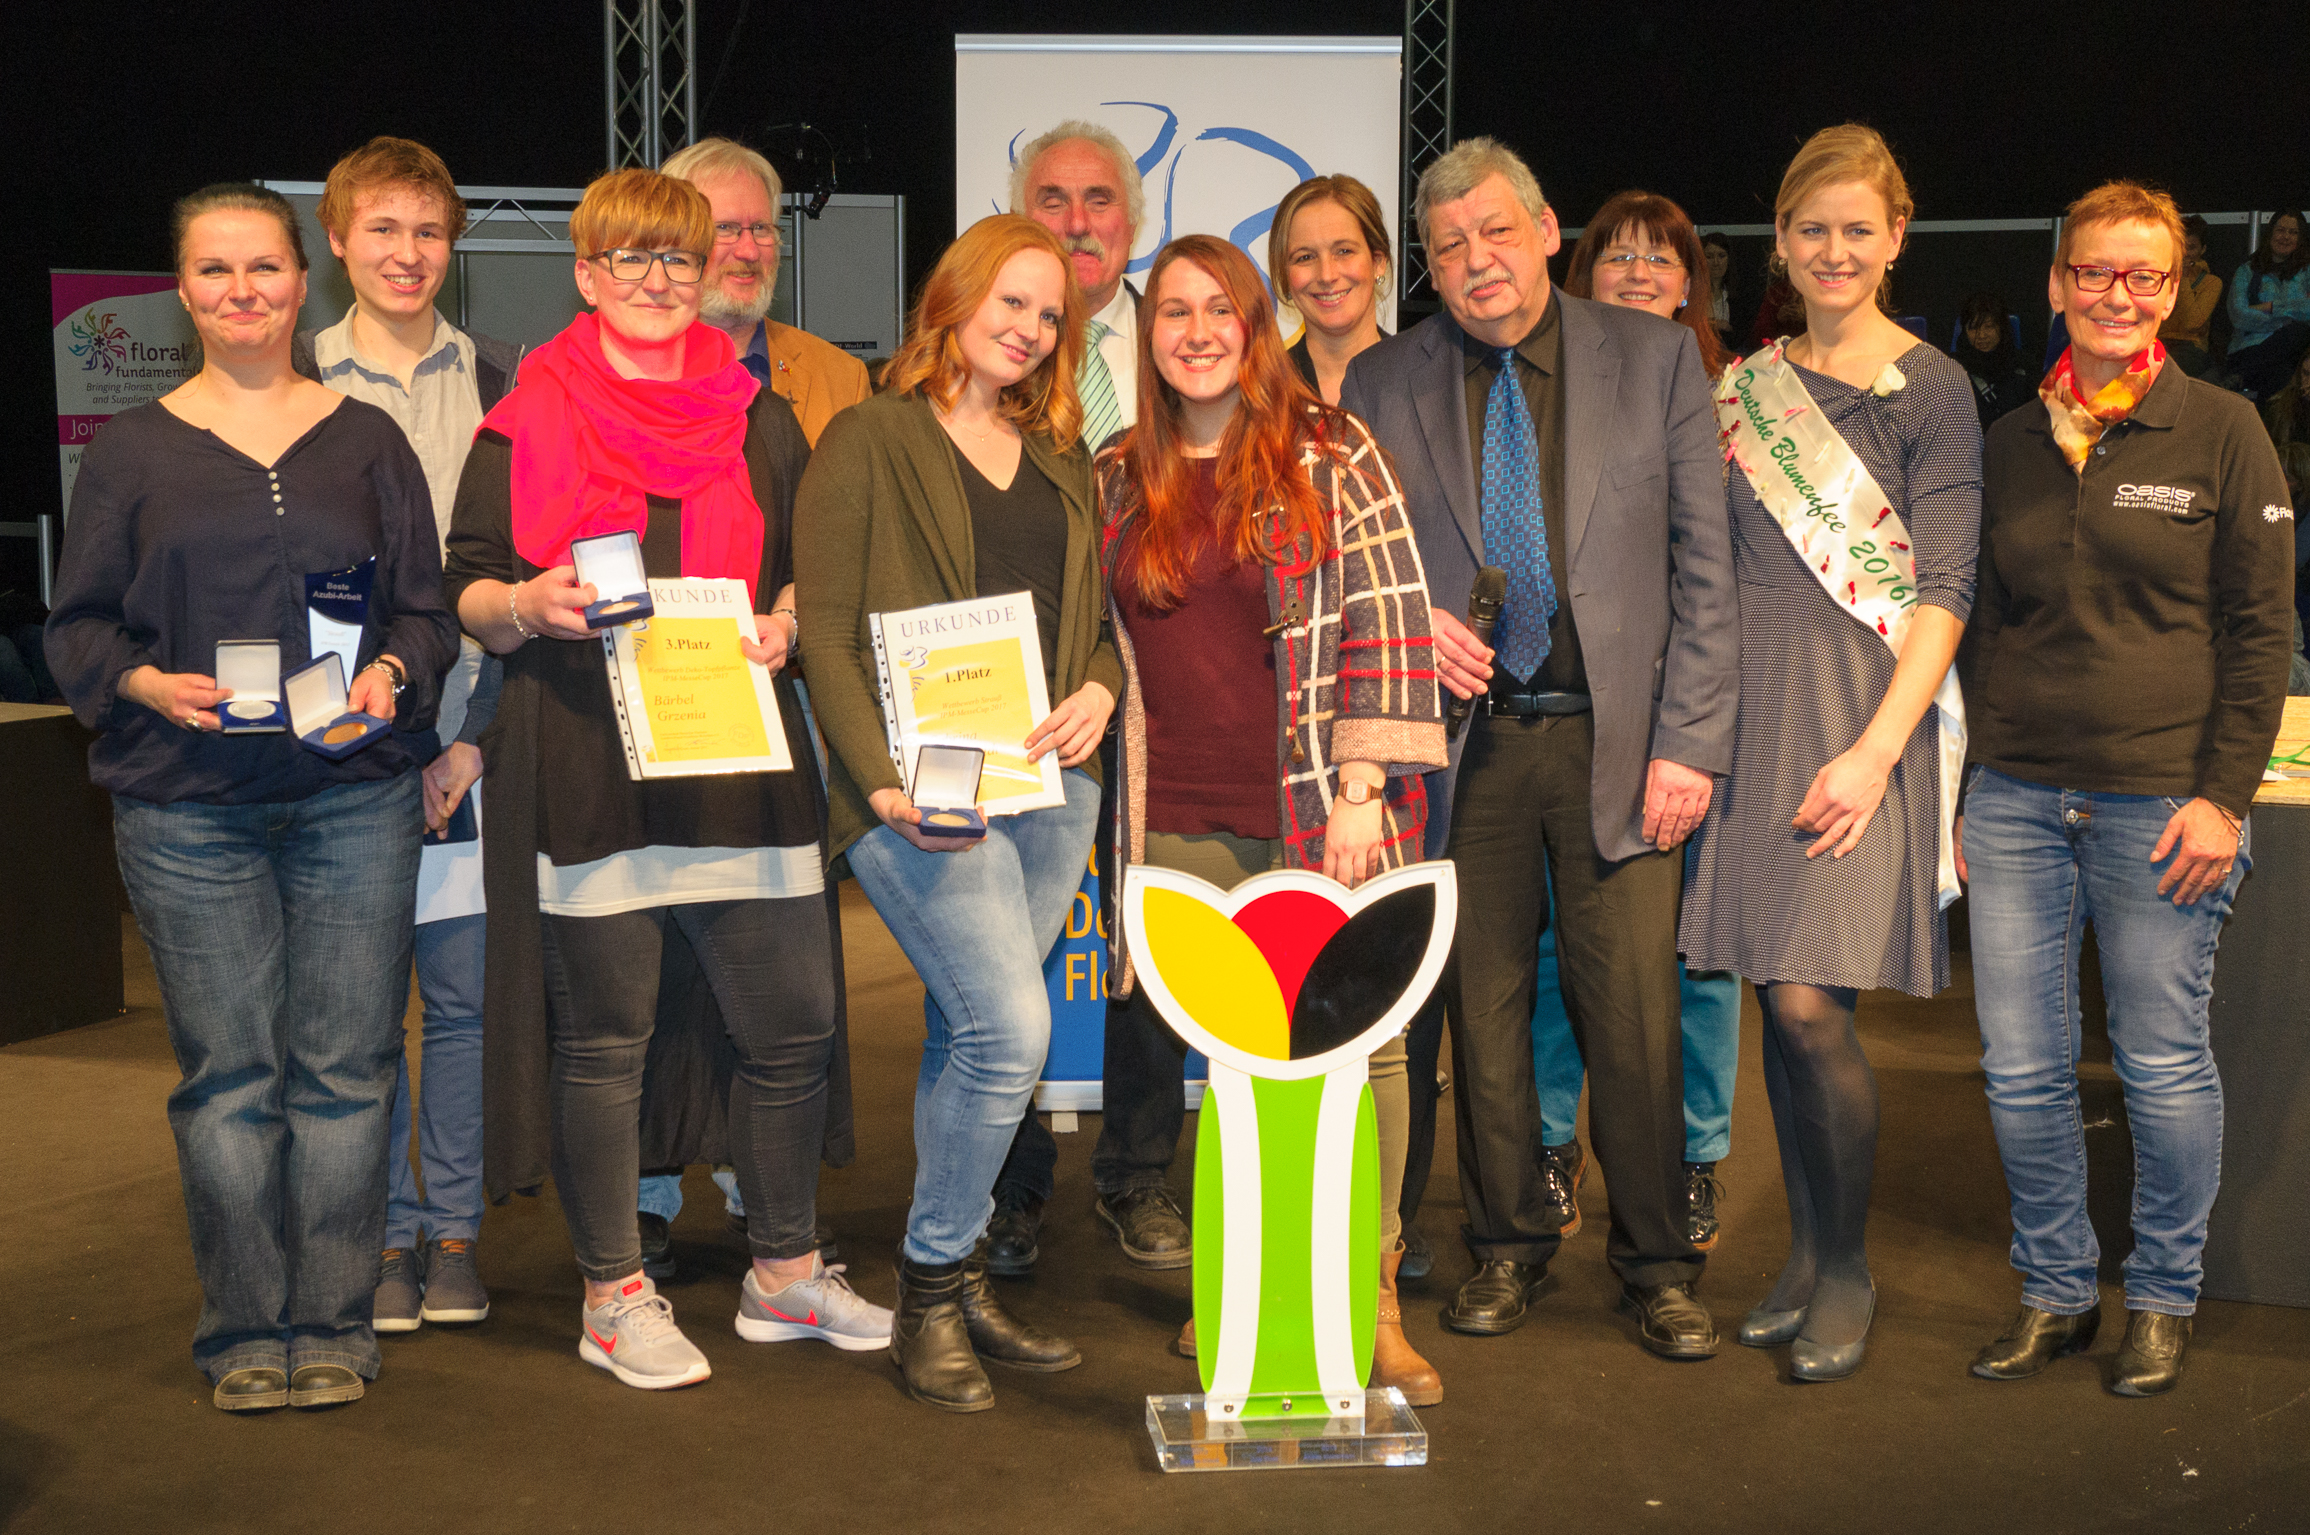 tl_files/images/motive/aktuelles/2017/2017_Jennifer Tiroke siegt beim IPM Messe Cup .jpg